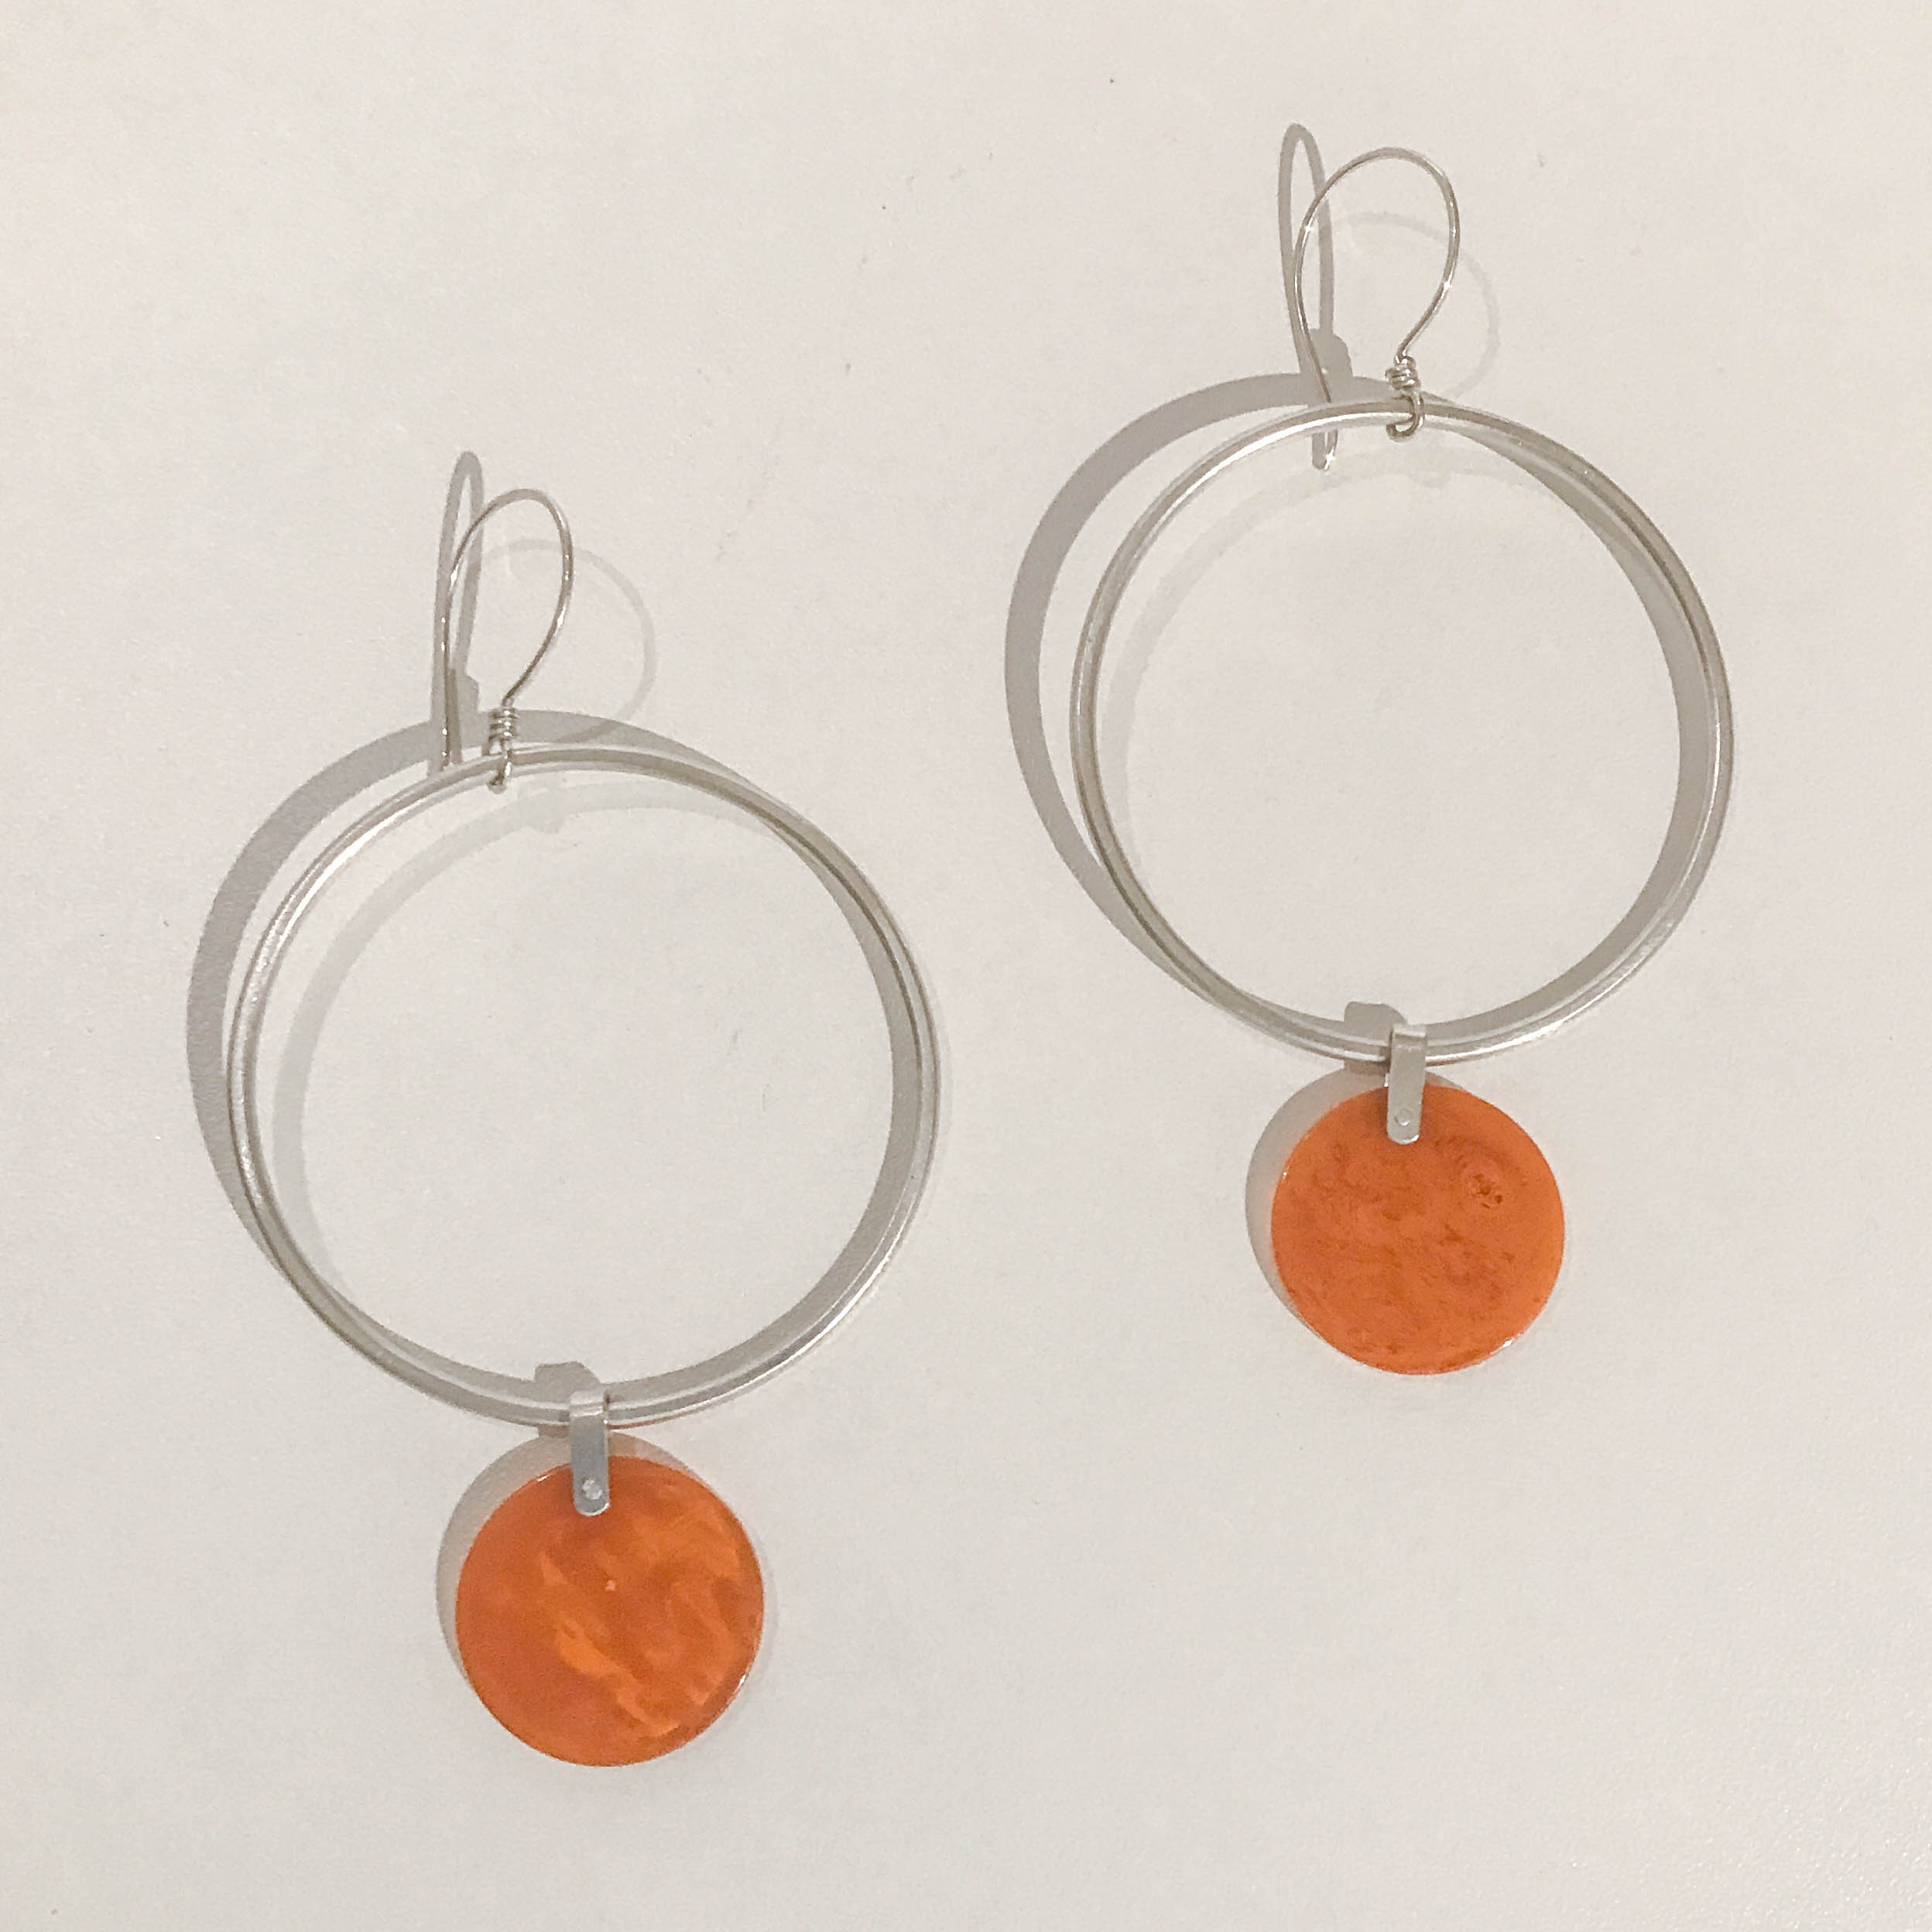 Silver hoop earrings with circles, sterling silver and vintage bakelite, $180